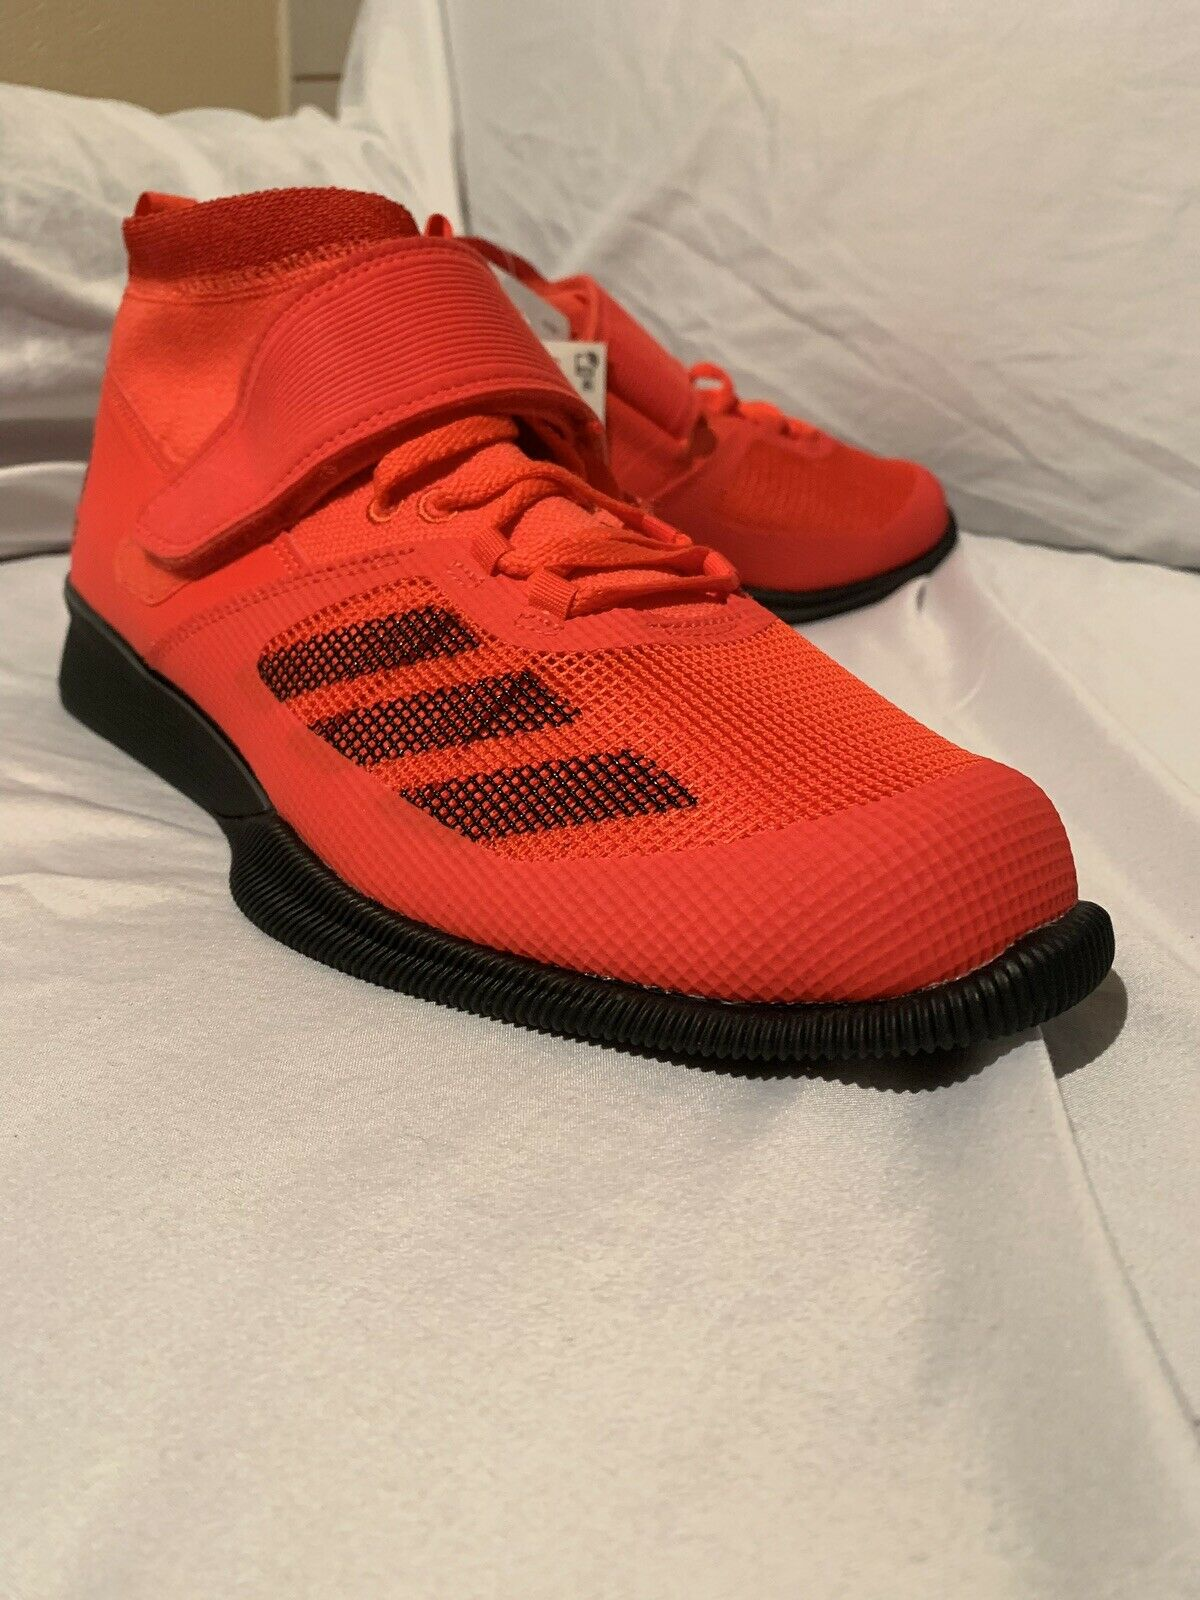 New Men's US 11 Adidas Crazy Power RK Weightlifting shoes Red Black BB6361